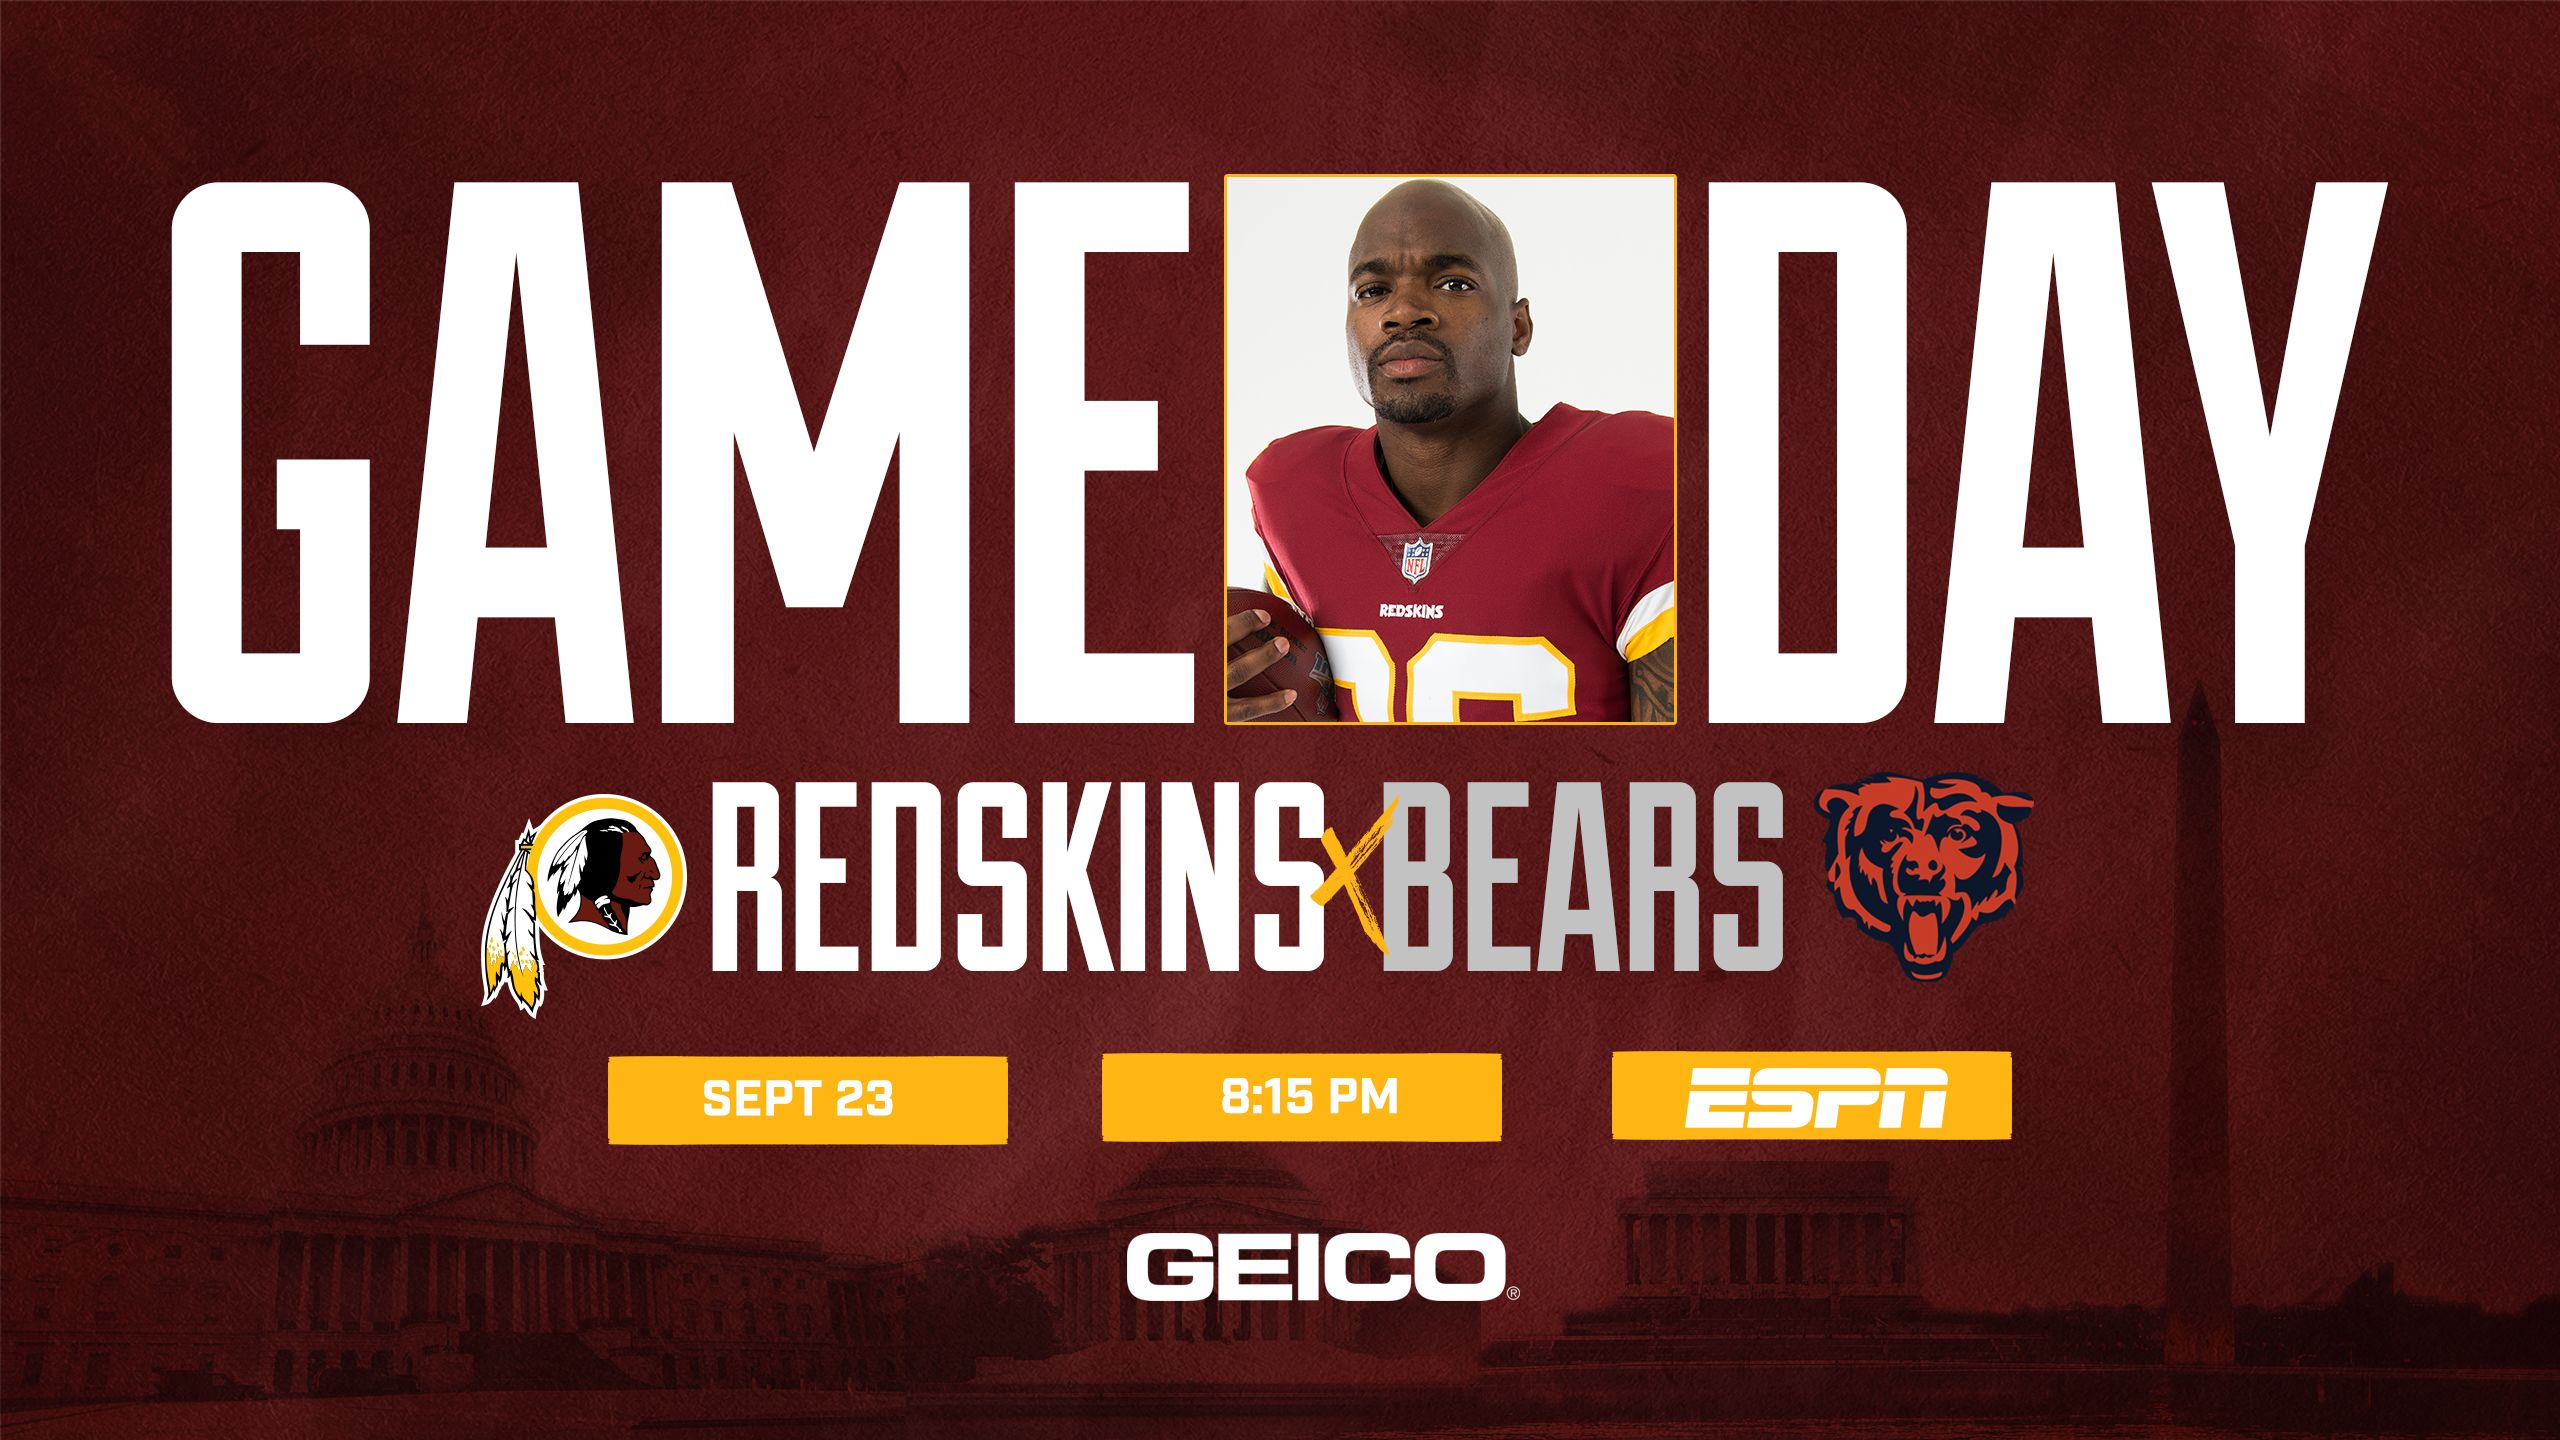 2019-week-3-bears-gameday-header